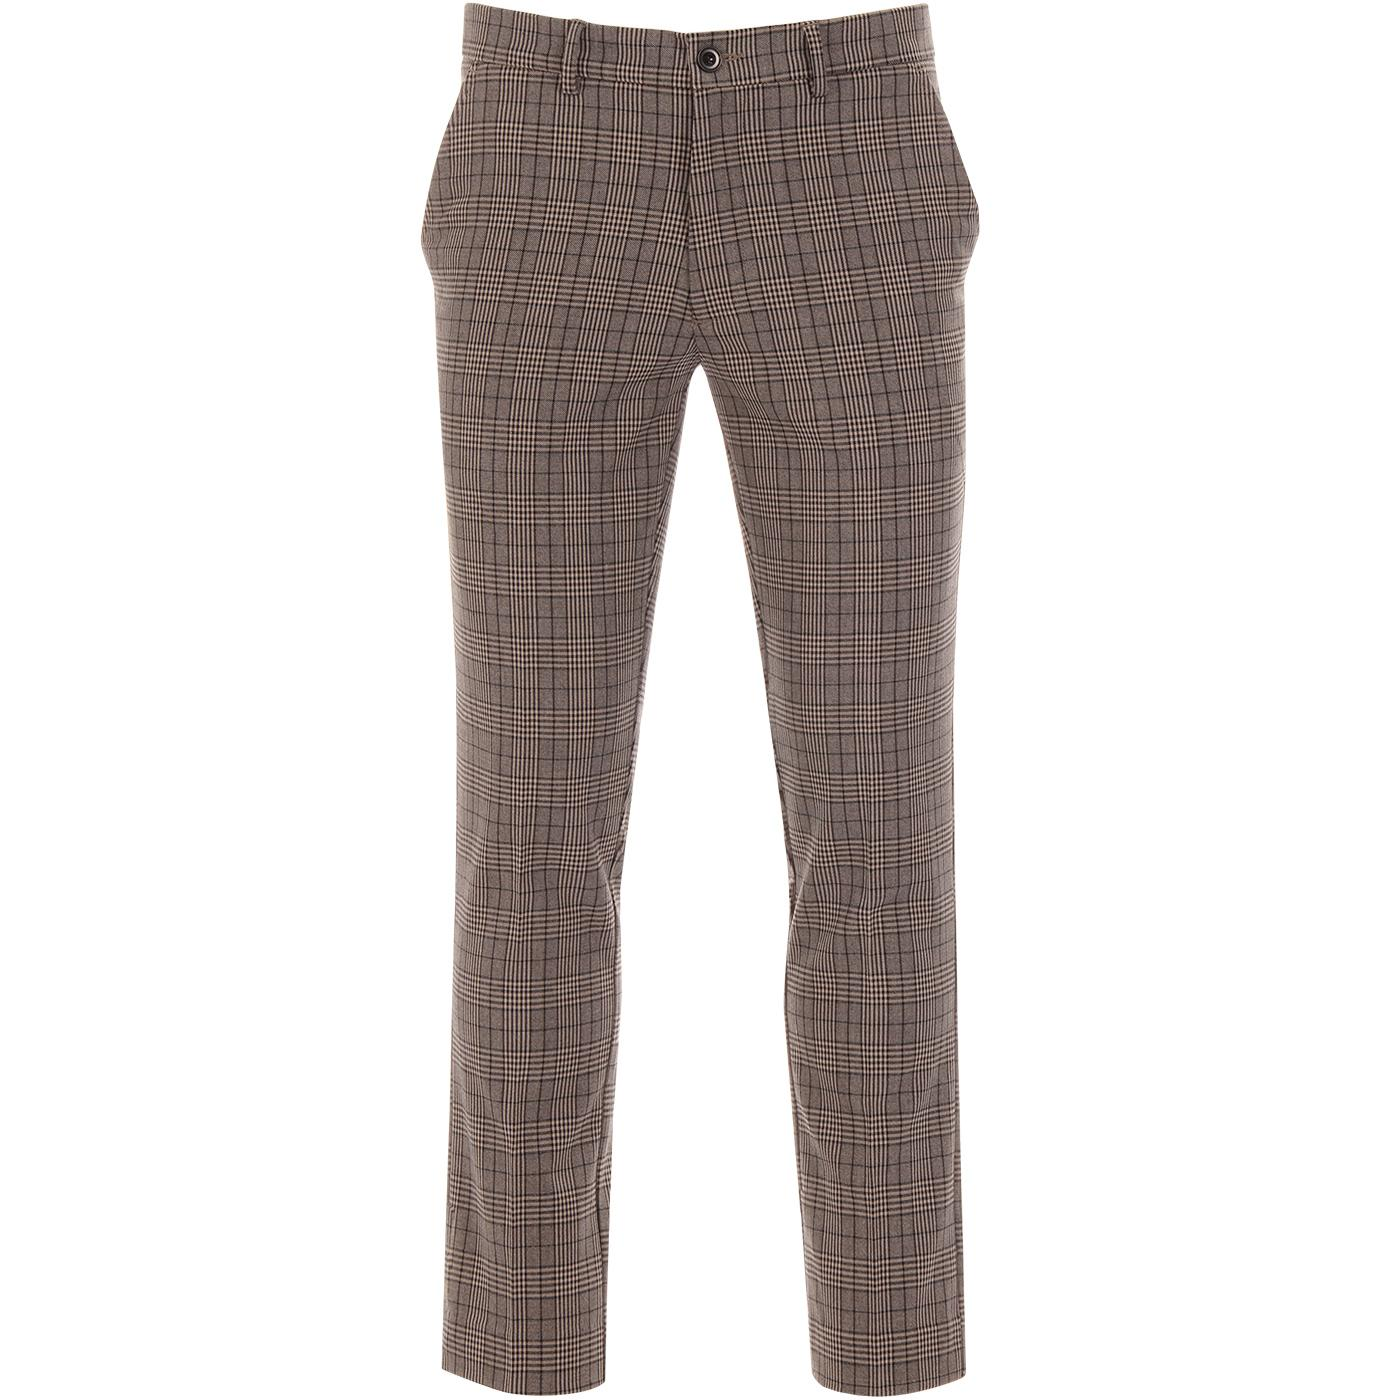 Elm FARAH Men's Retro Slim Leg POW Check Trousers